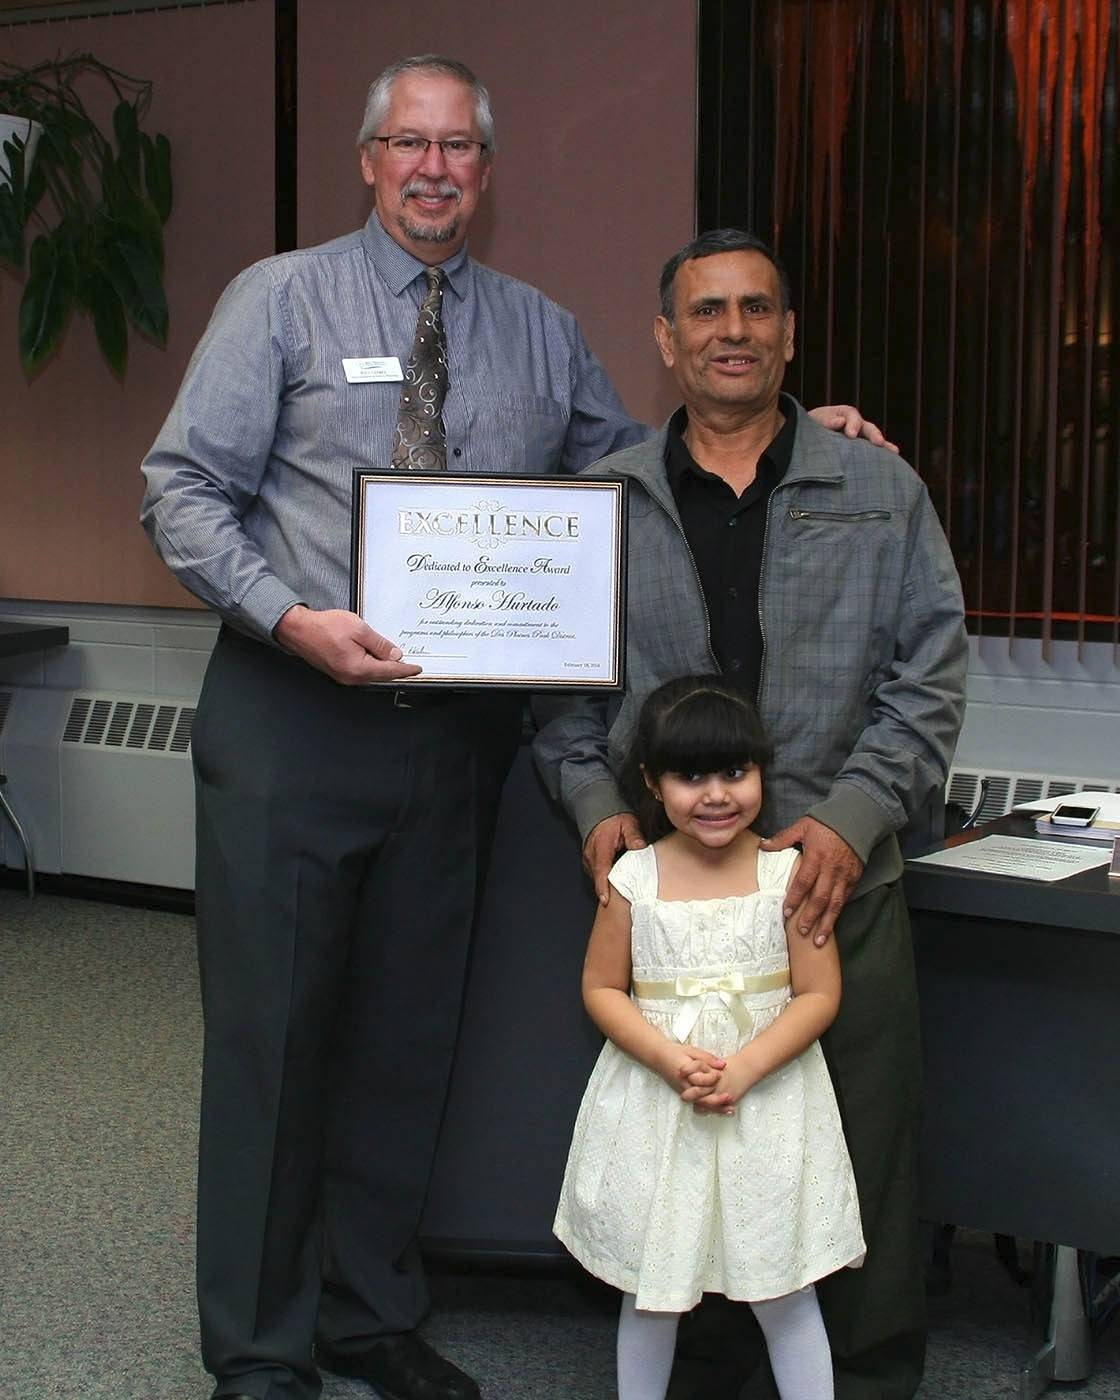 Alfonso Hurtado, along with his granddaughter, Bianca, receives his Dedicated to Excellence Award from Paul Cathey, superintendent of Parks and Planning at the park board meeting on Feb. 18.